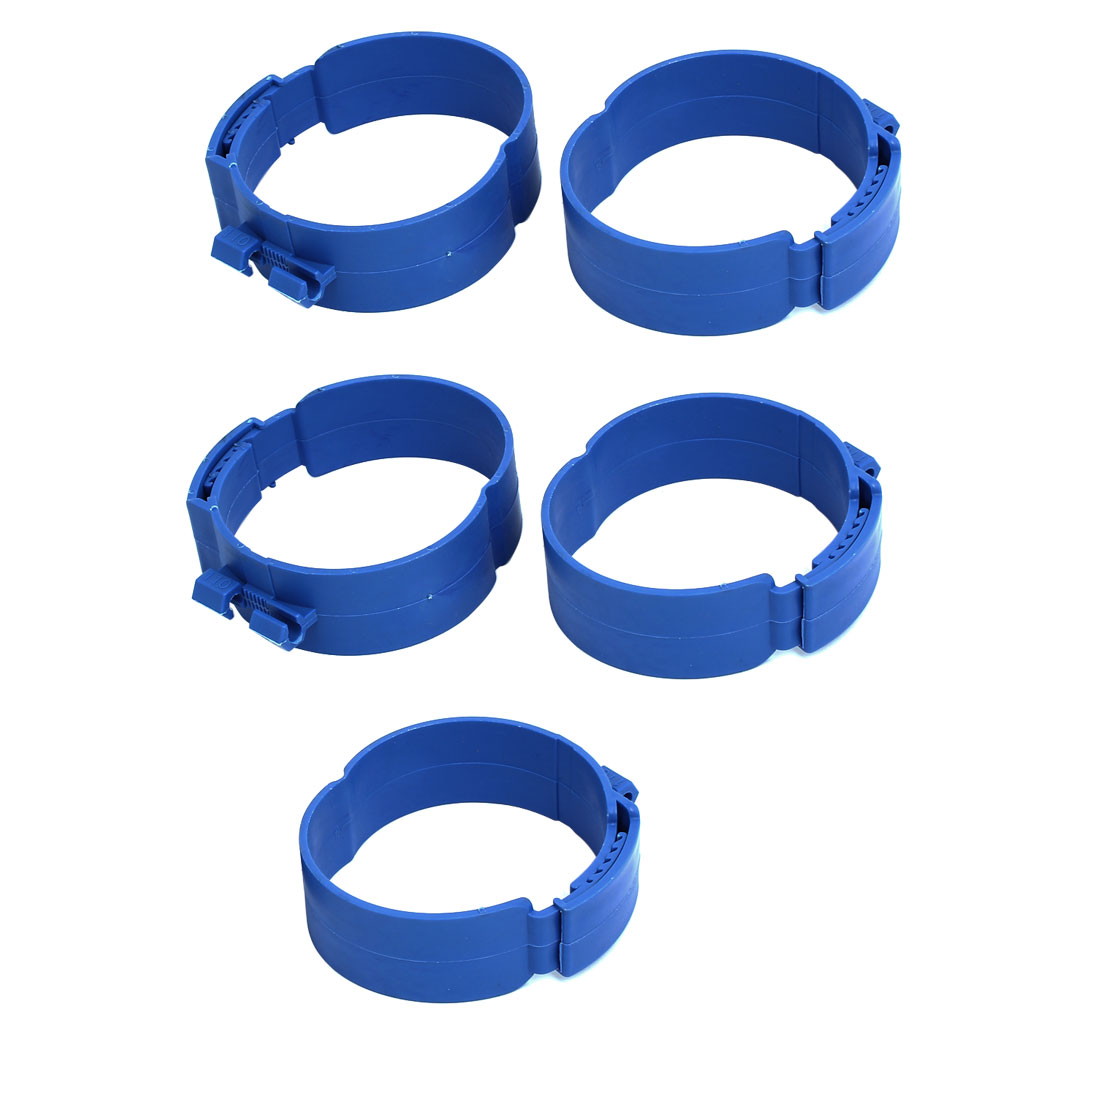 110mm Dia 38mm Width Central Air Conditioner Pipe Clip Clamp Blue 5pcs